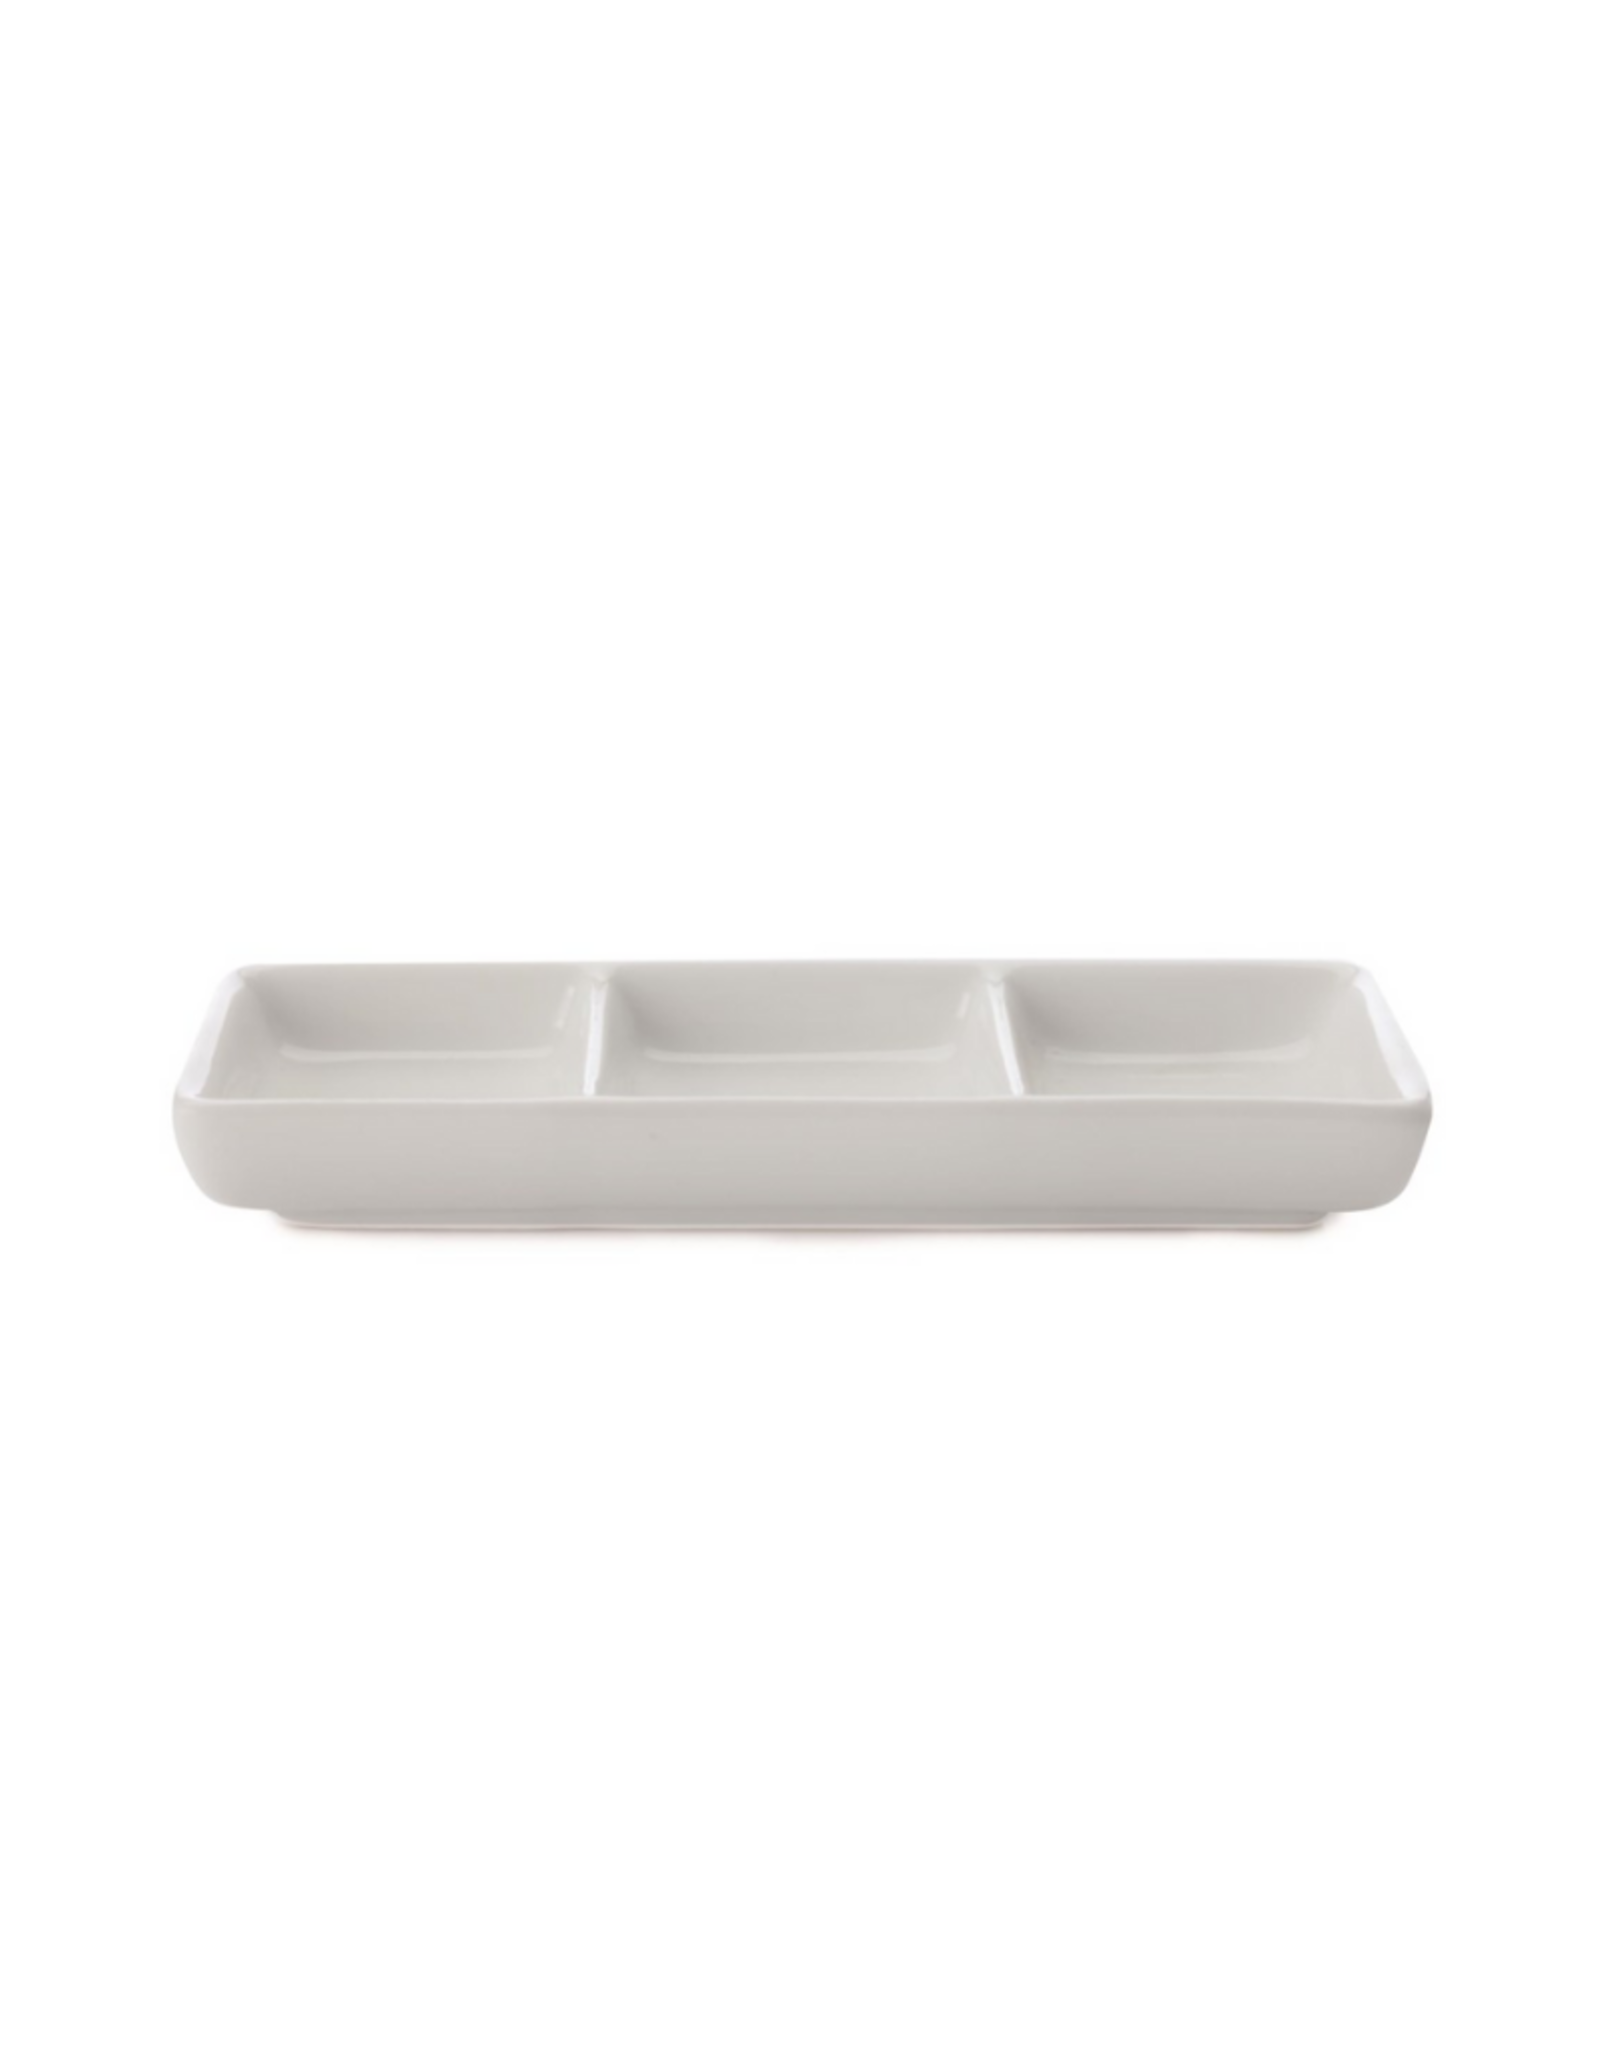 Maxwell Williams Petite assiette à 3 sections MW 15cm